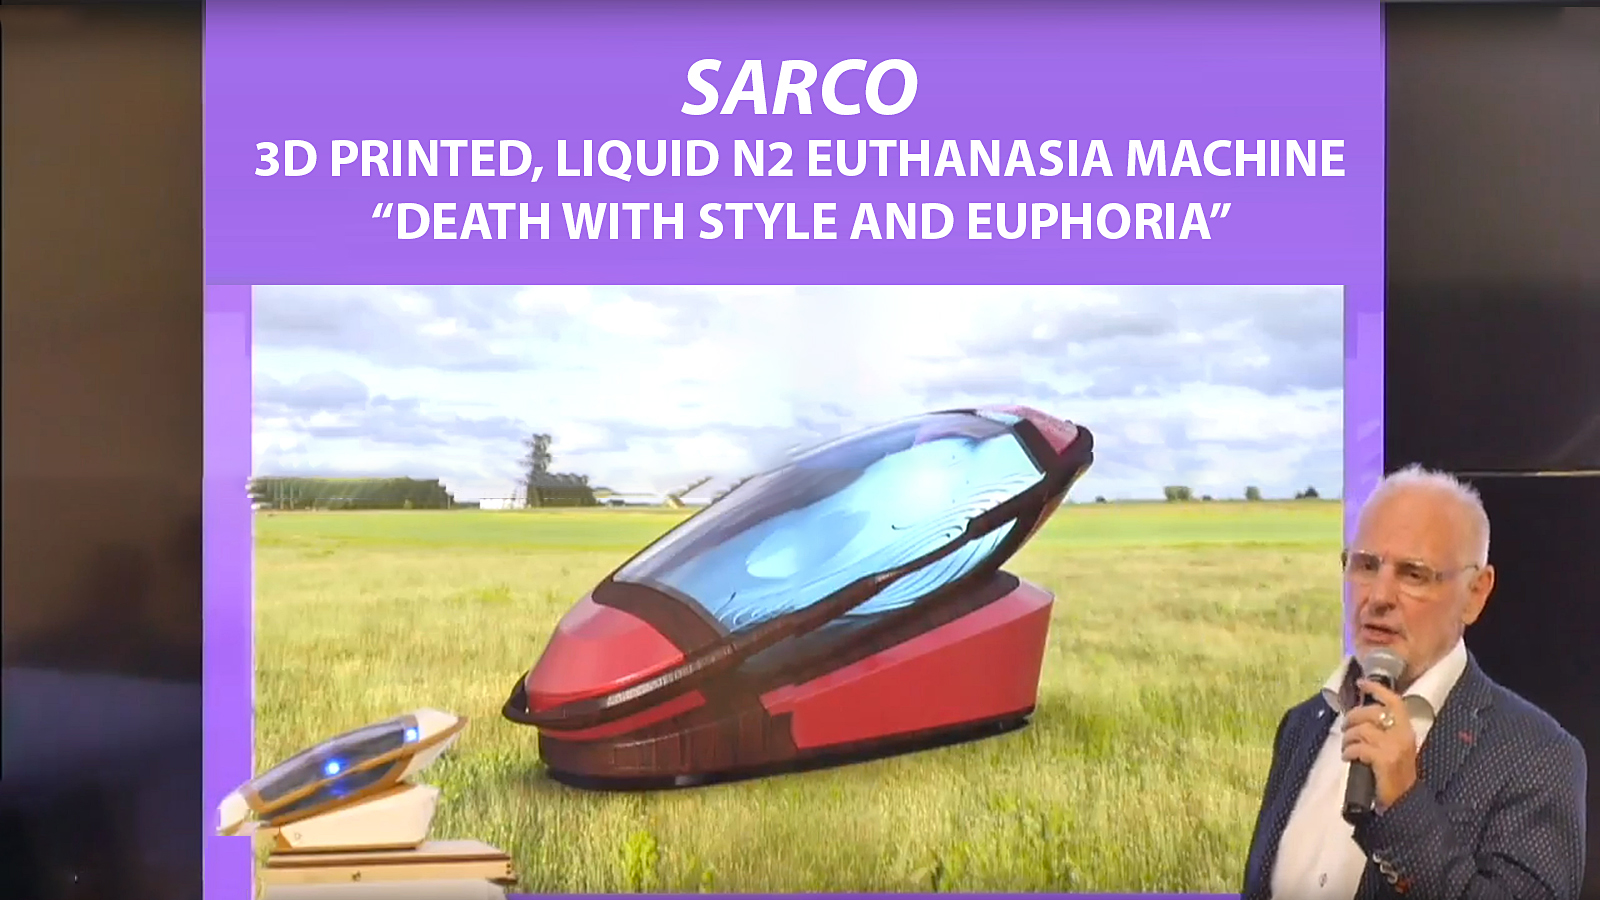 The Sarco Suicide Pod: Controversial or Compassionate?